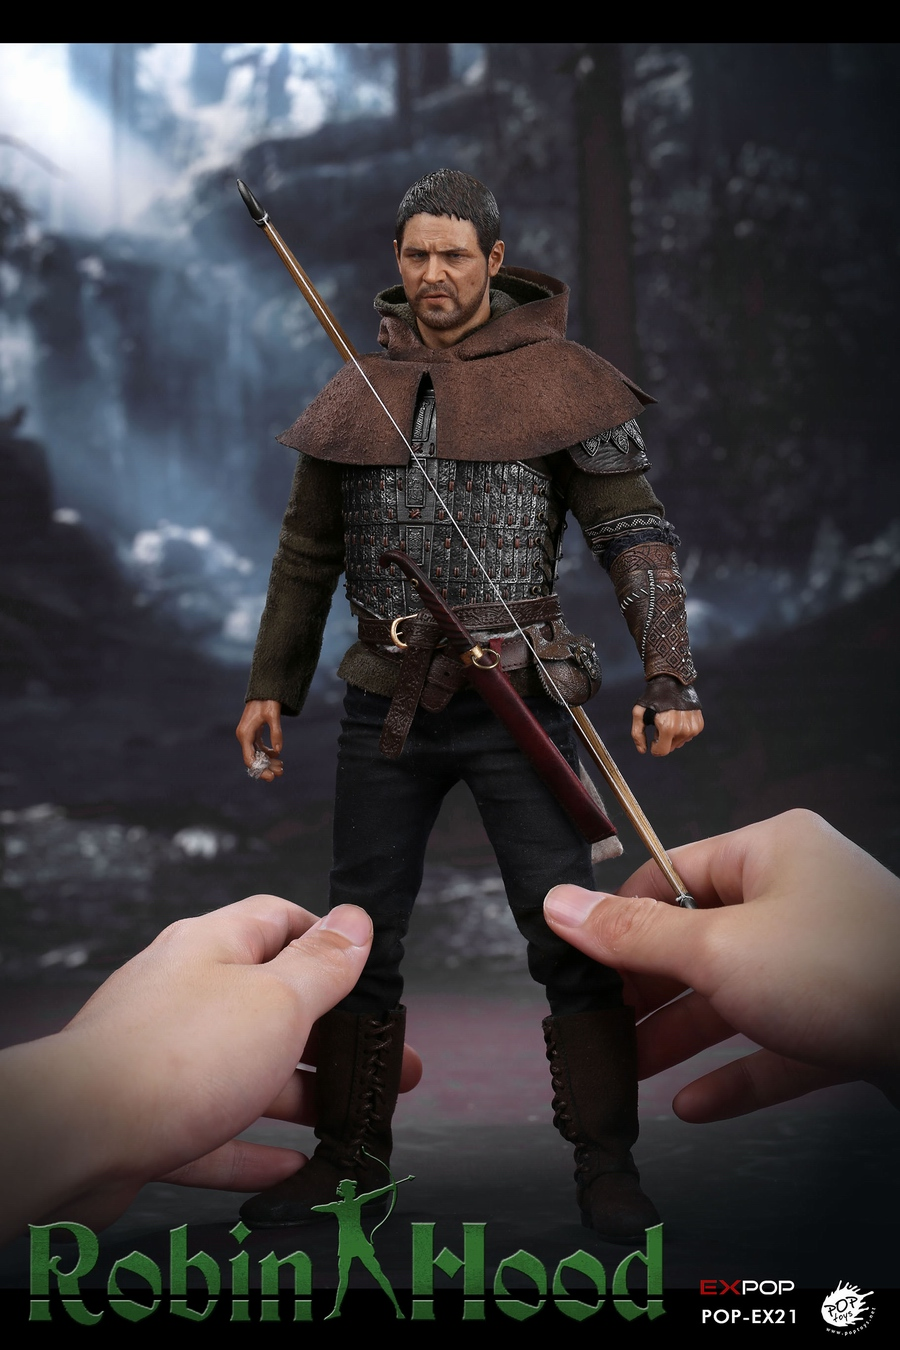 "POPTOYS EX21 1//6 Scale Chivalrous Robin Hood 12/"" Action Figure Body Sponge Suit"